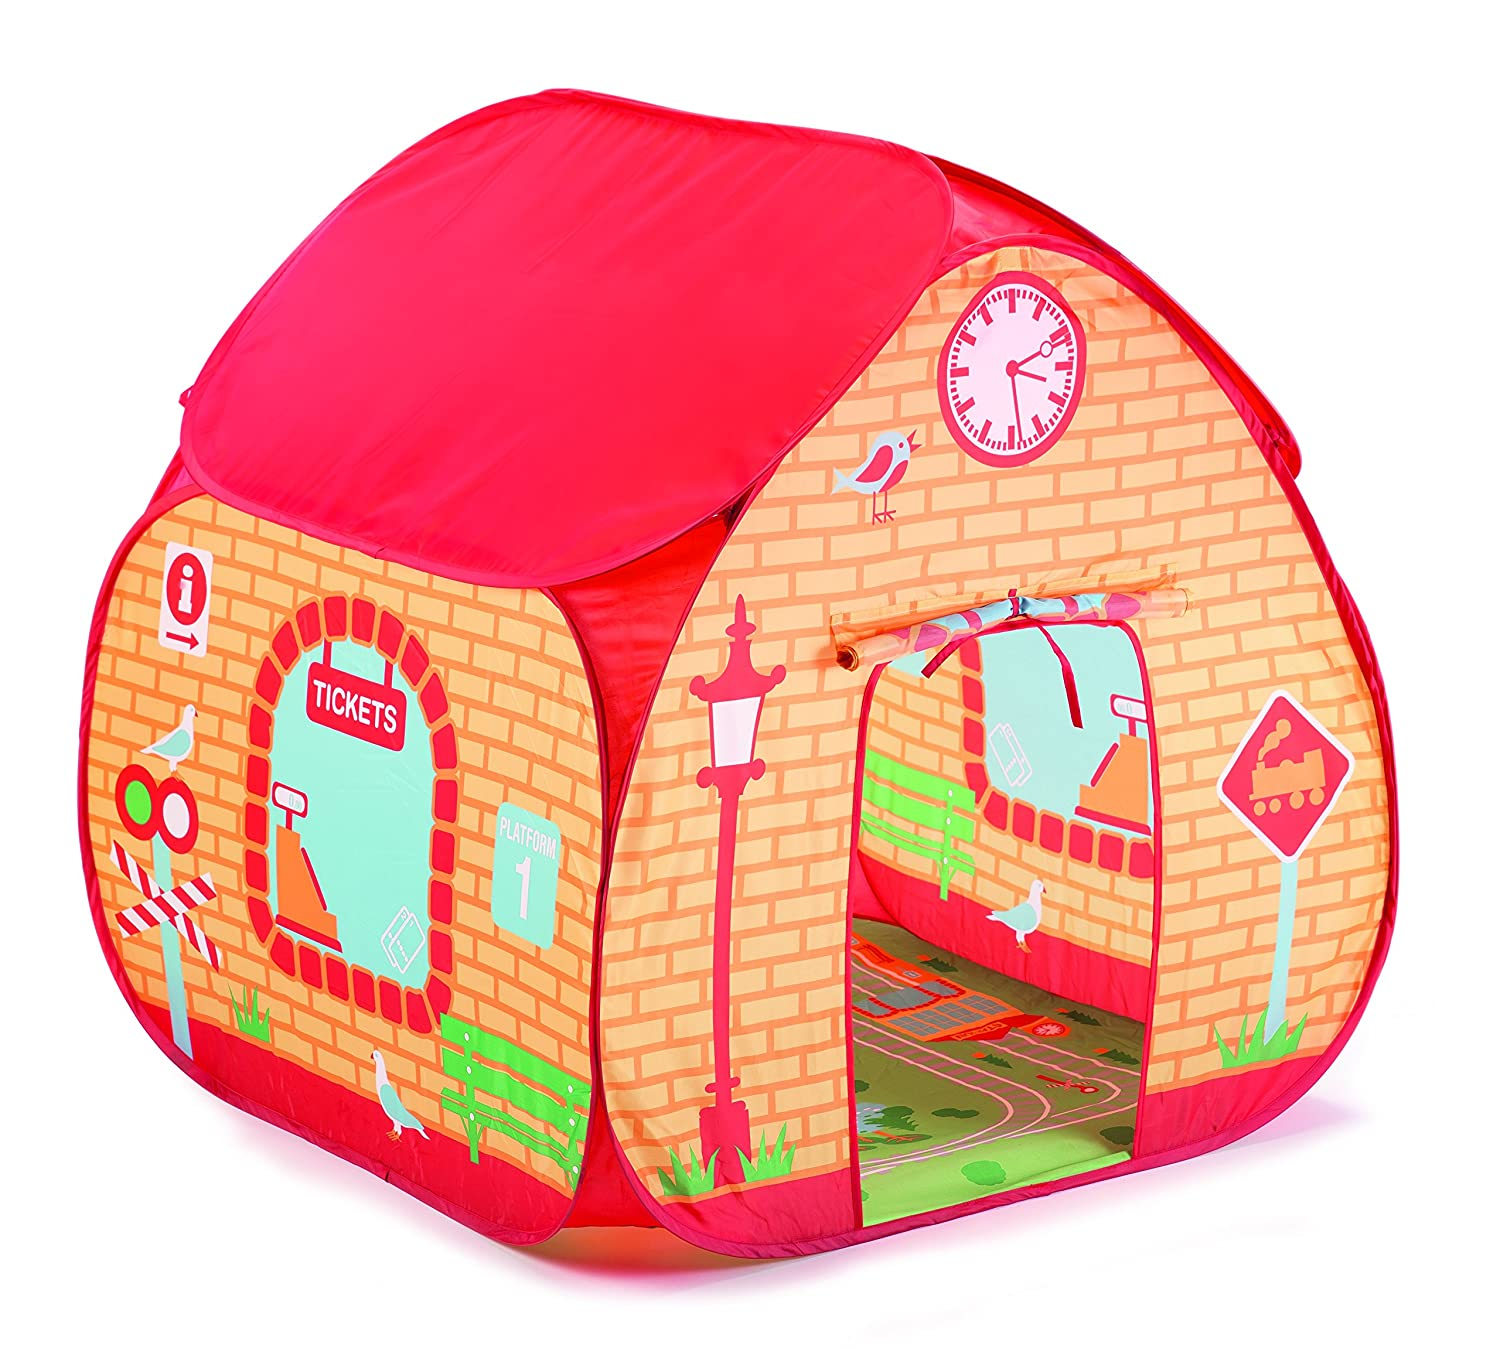 Amazon.com Childrens Pop Up Play Tent Designed like a Train Station / Great for Thomas The Tank Engine Toys Fanatics ! with a Unique Printed Play Floor ...  sc 1 st  Amazon.com & Amazon.com: Childrens Pop Up Play Tent Designed like a Train ...